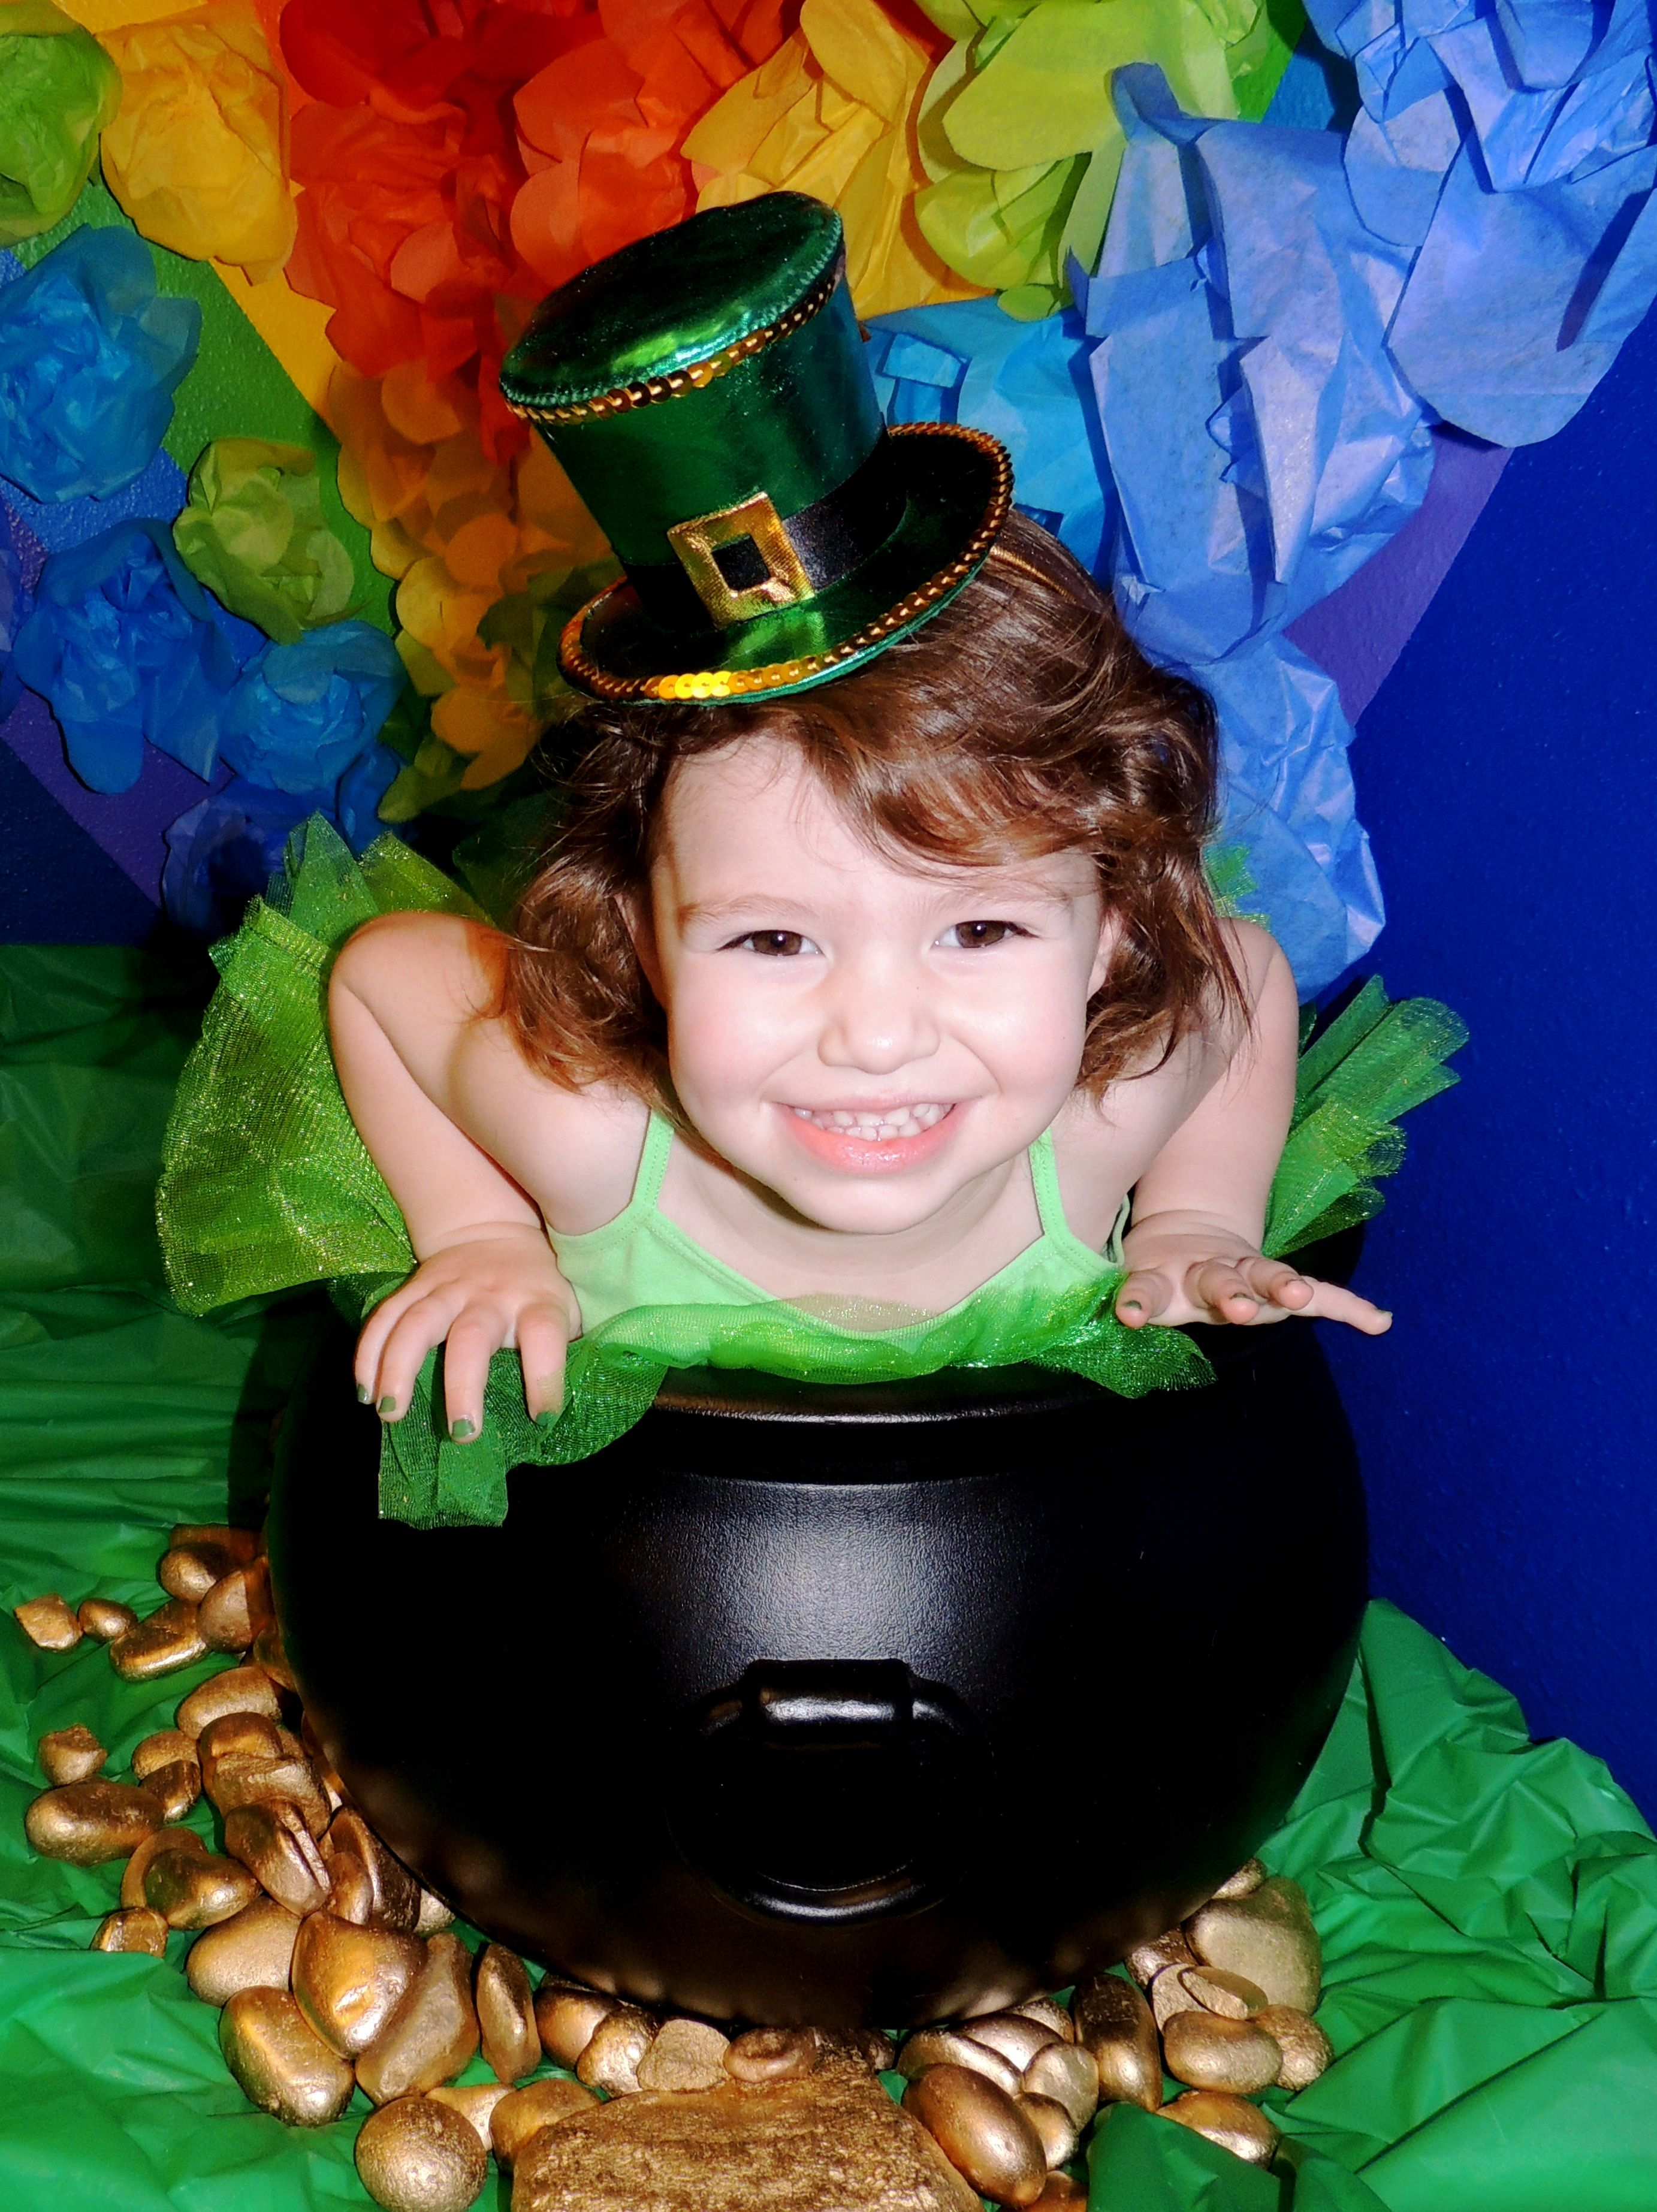 St Patrick Day Photo Shoot Ideas Photography Inspiration Photo - Dad turns his 6 month old son into real life leprechaun for st patricks day